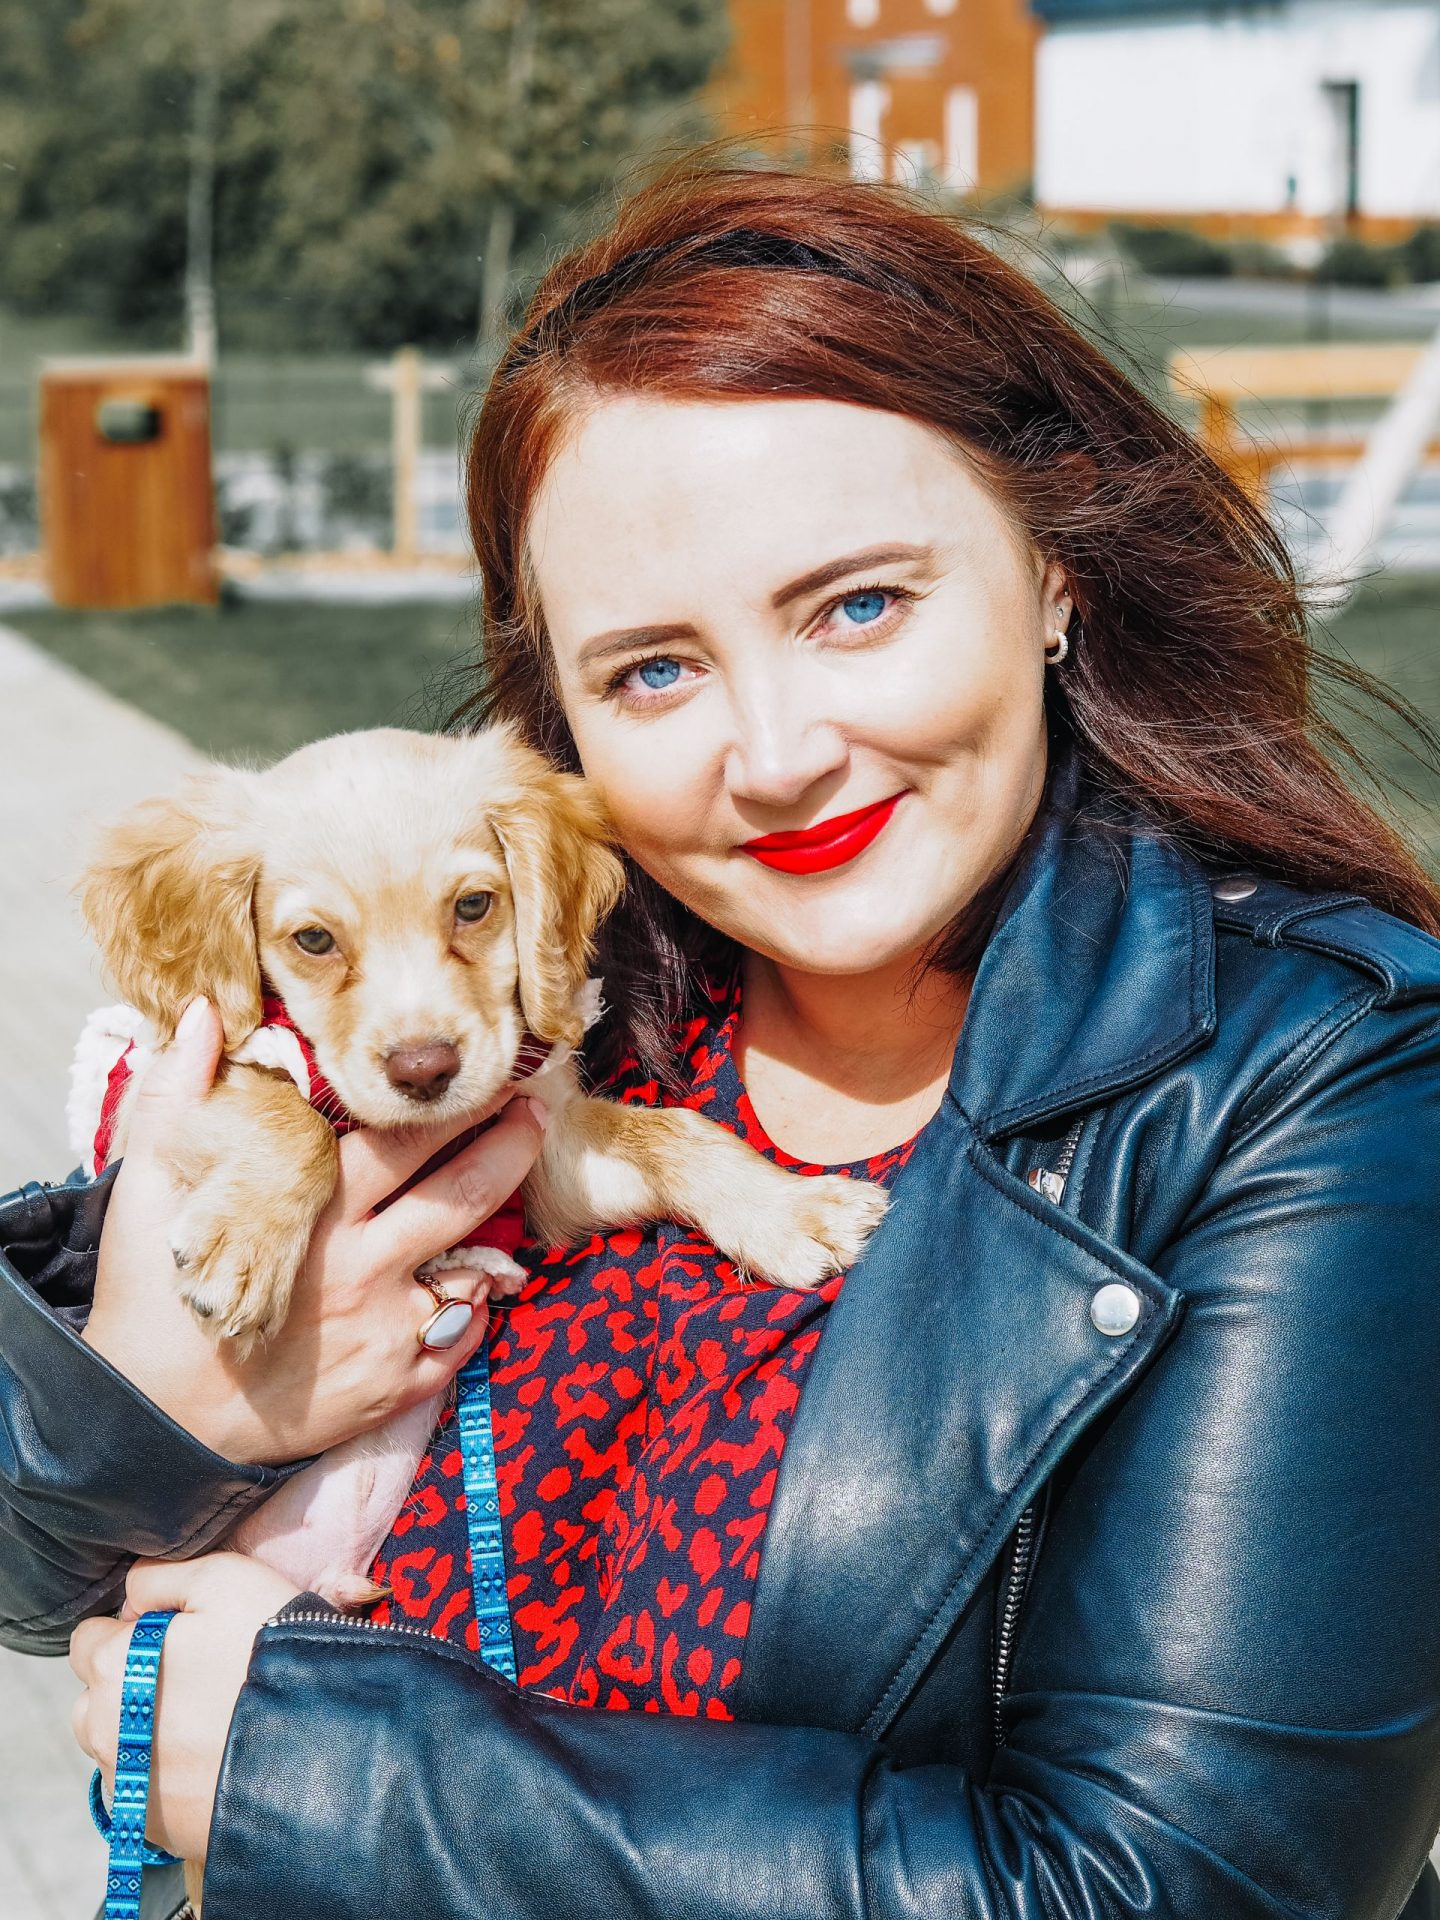 15 Things I've Learned Since Getting A Puppy | Advice & Anecdotes